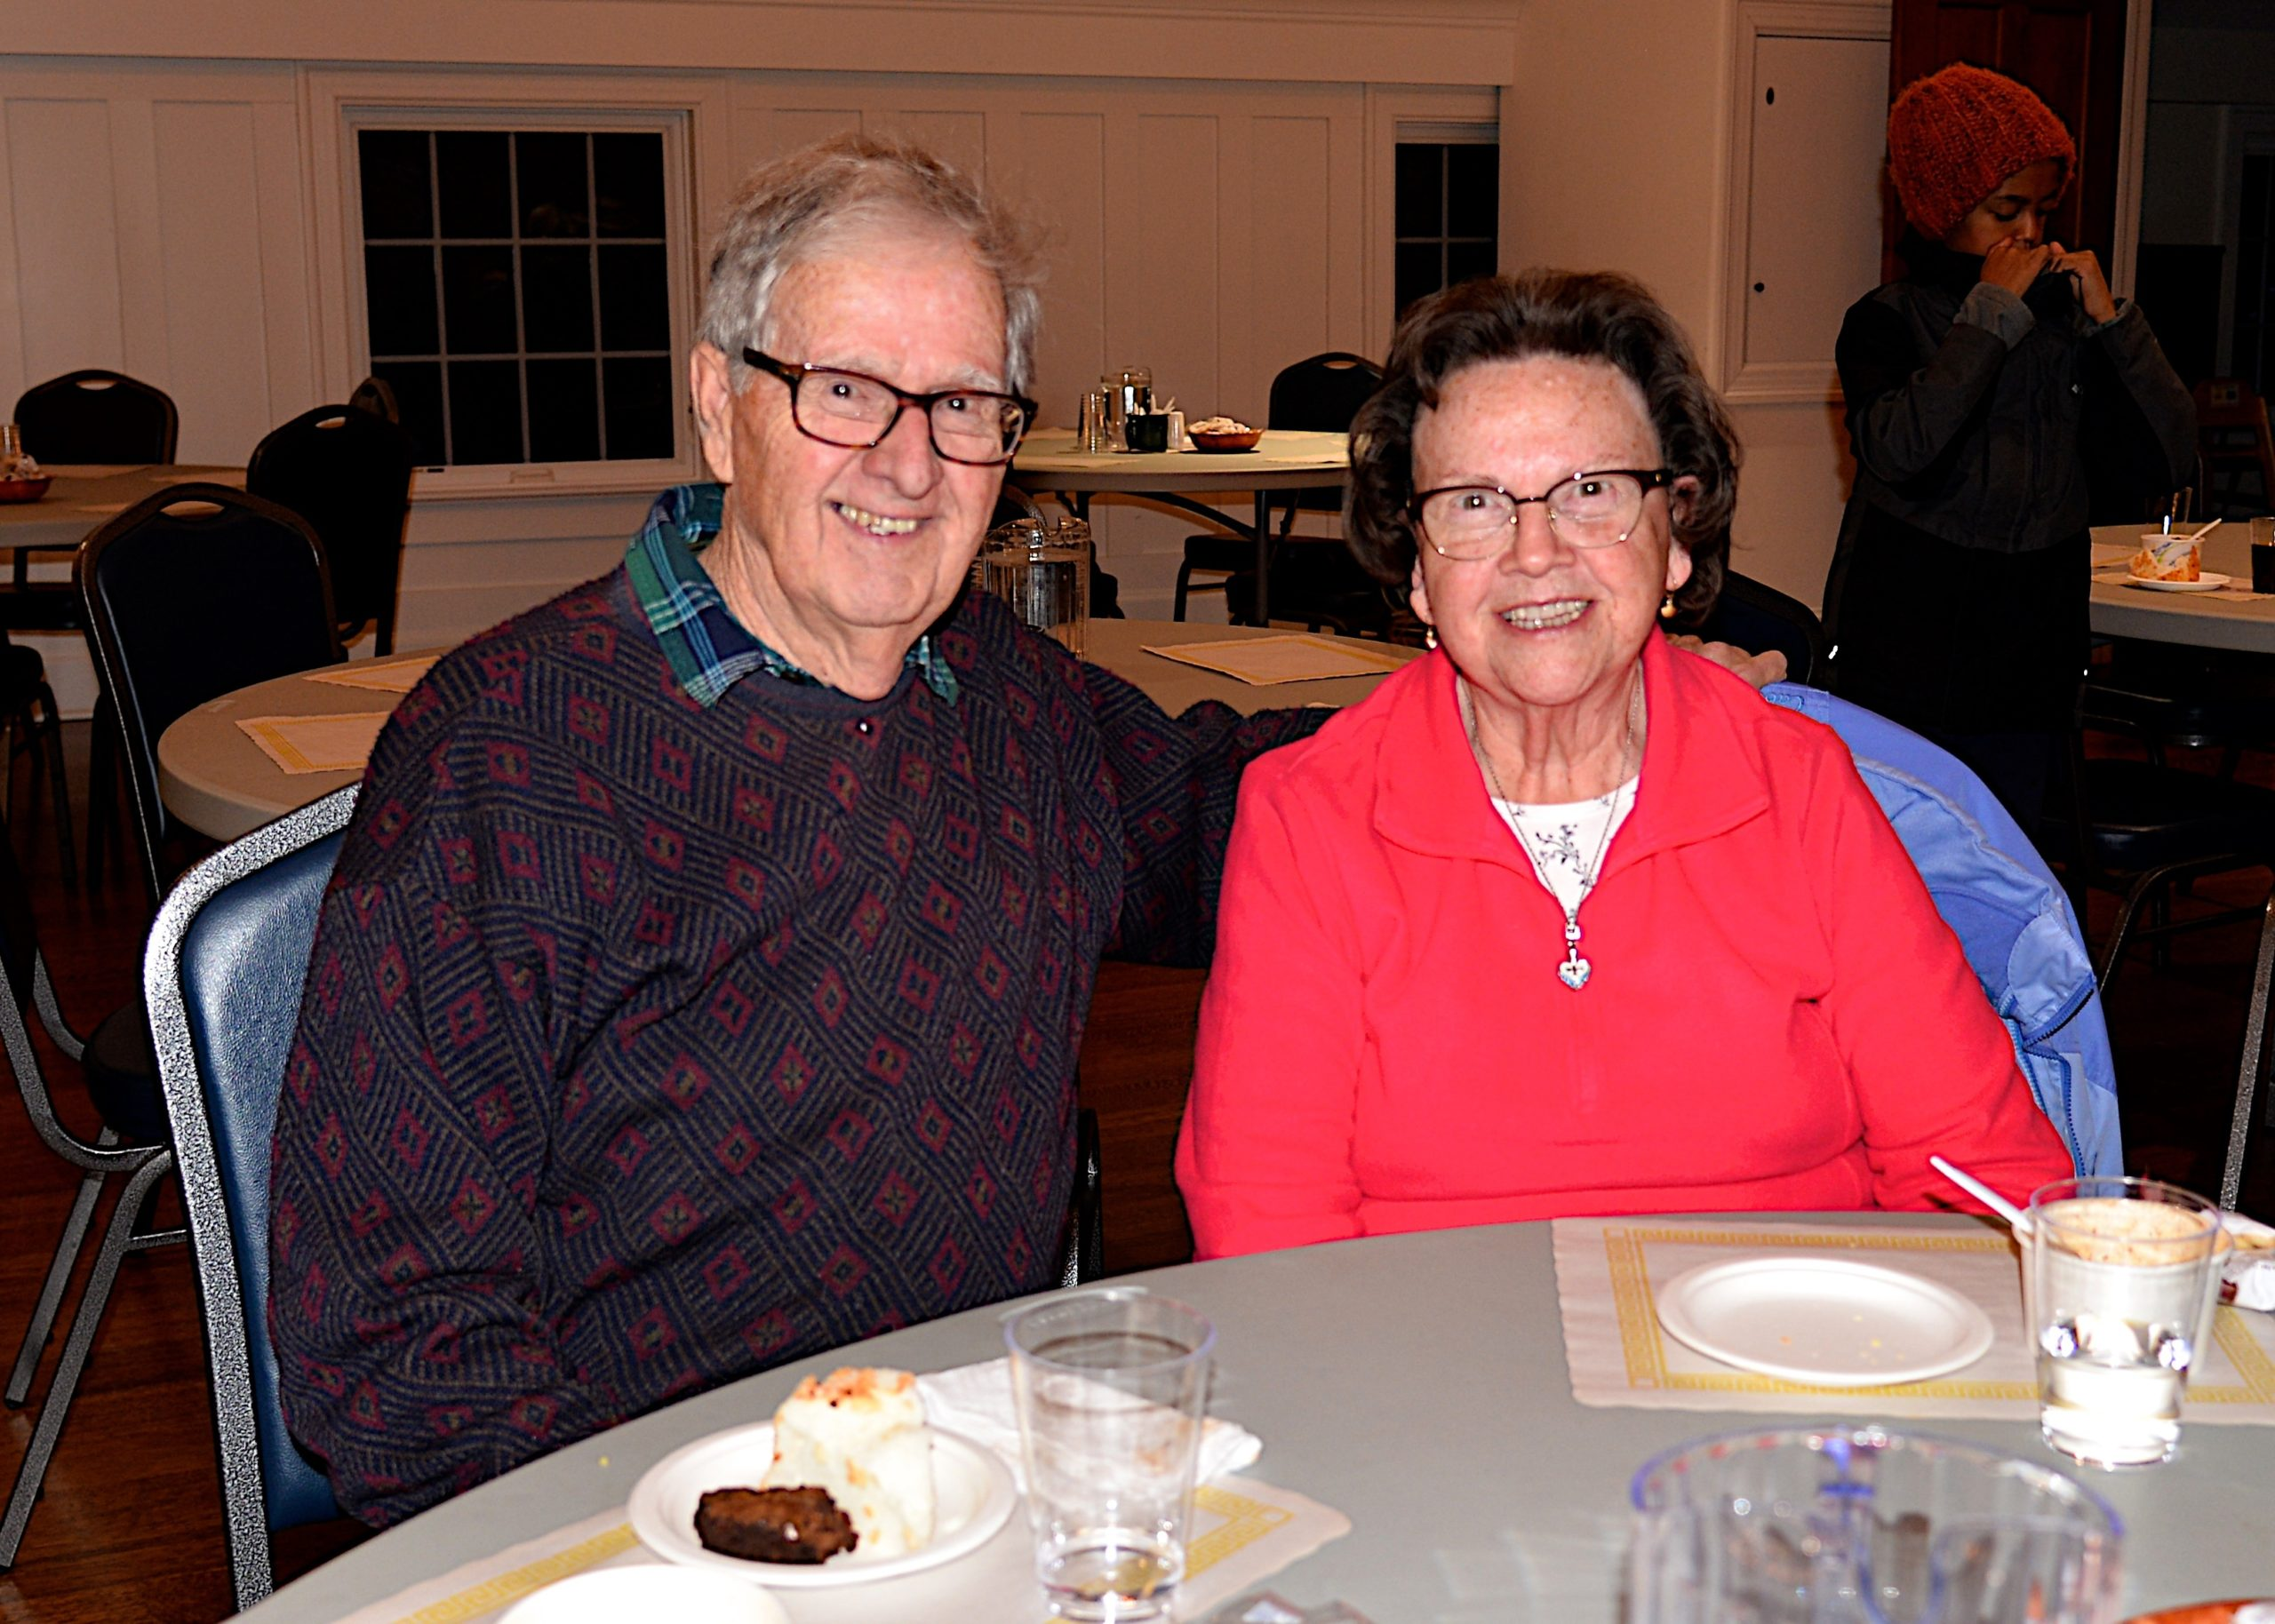 The deacons of the Amagansett Presbyterian Church hosted a Soup and Chili dinner on Saturday. Reverend Rob Stuart and Mary Vorpahl at the event. KYRIL BROMLEY